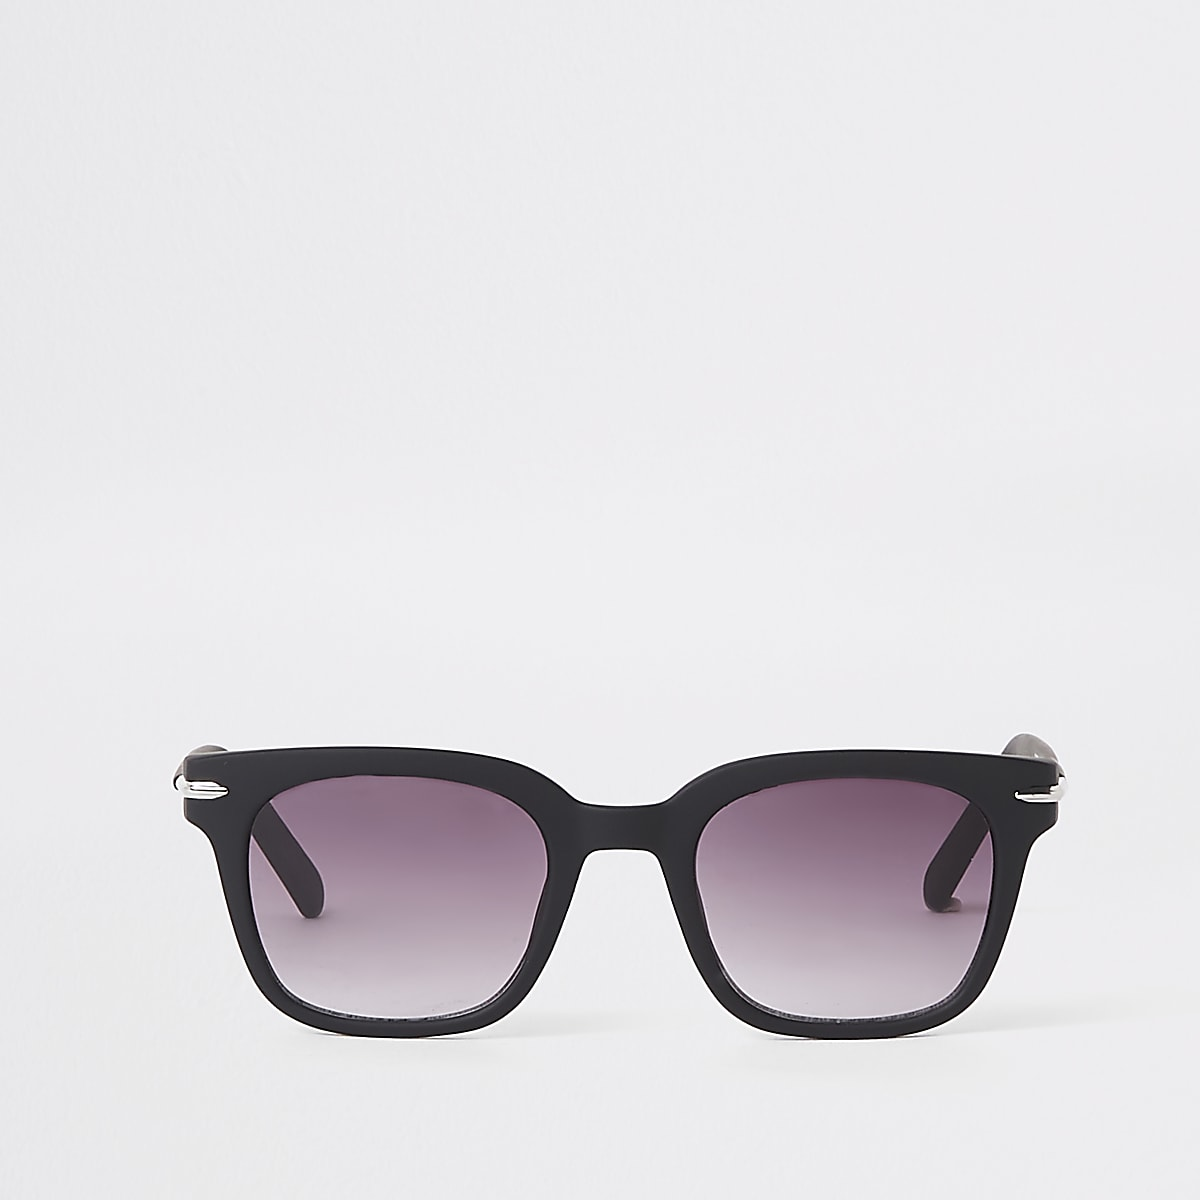 Black smoke lens slim retro square sunglasses